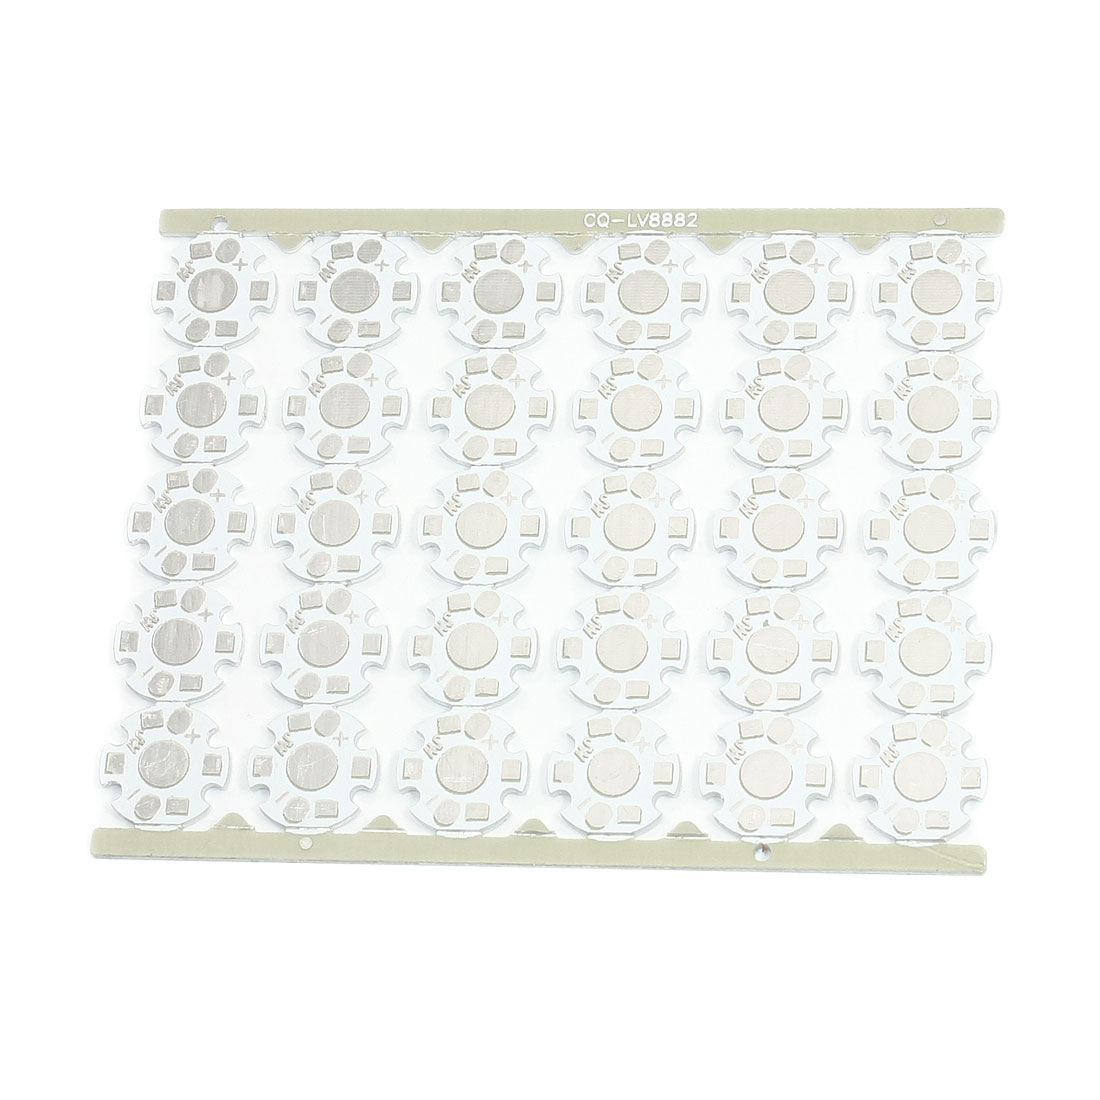 30 Pcs 16mm Diameter Aluminum Base Plate PCB Circuit Board for 1 x 1W/3W LEDs Bulb